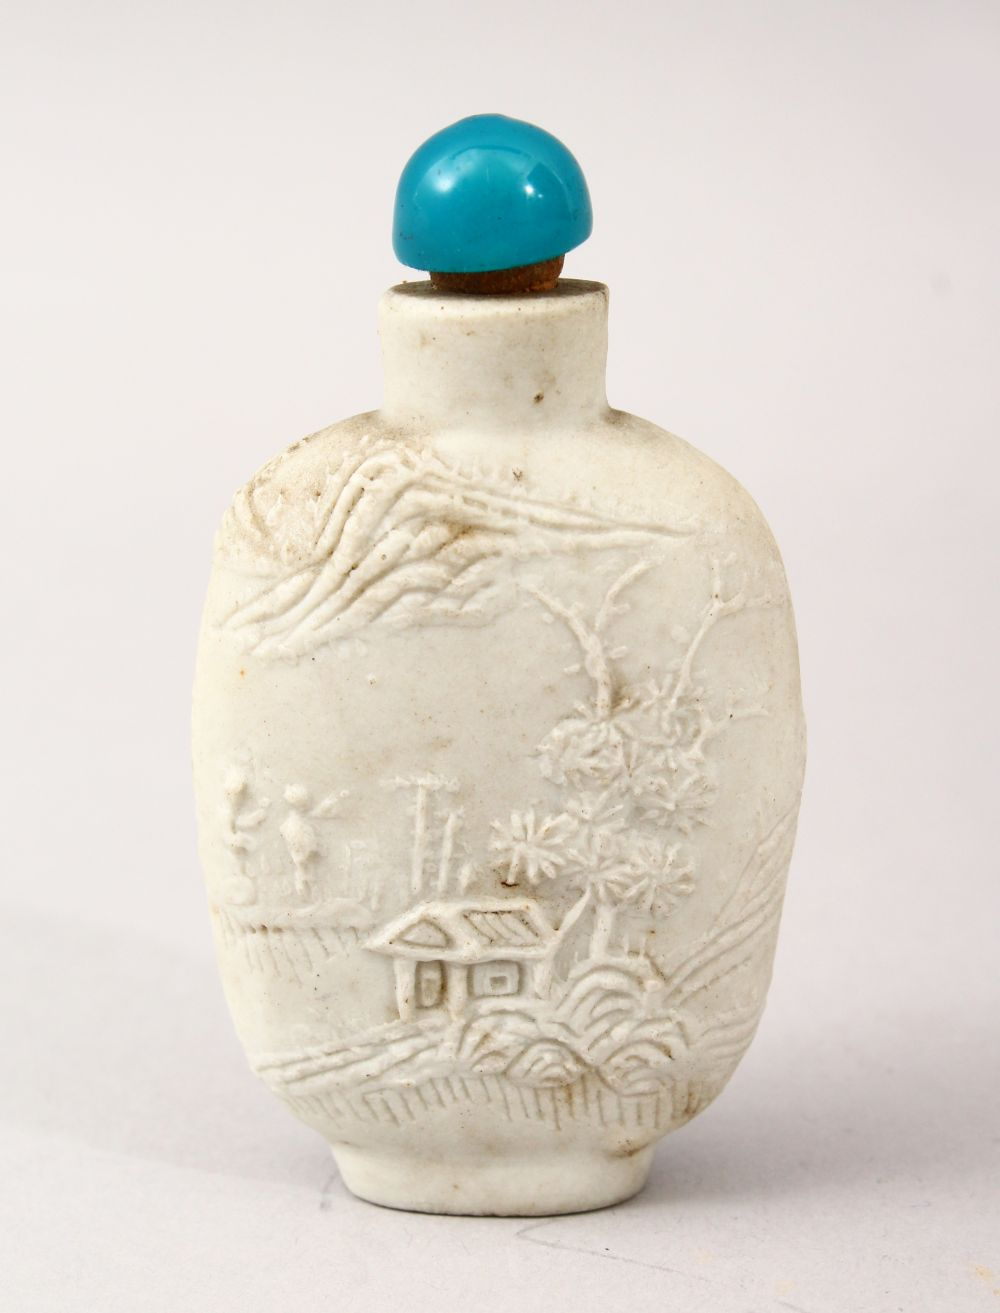 A GOOD 19TH CENTURY CHINESE MONOCHROME PORCELAIN CARVED SNUFF BOTTLE, decorated with scenes of